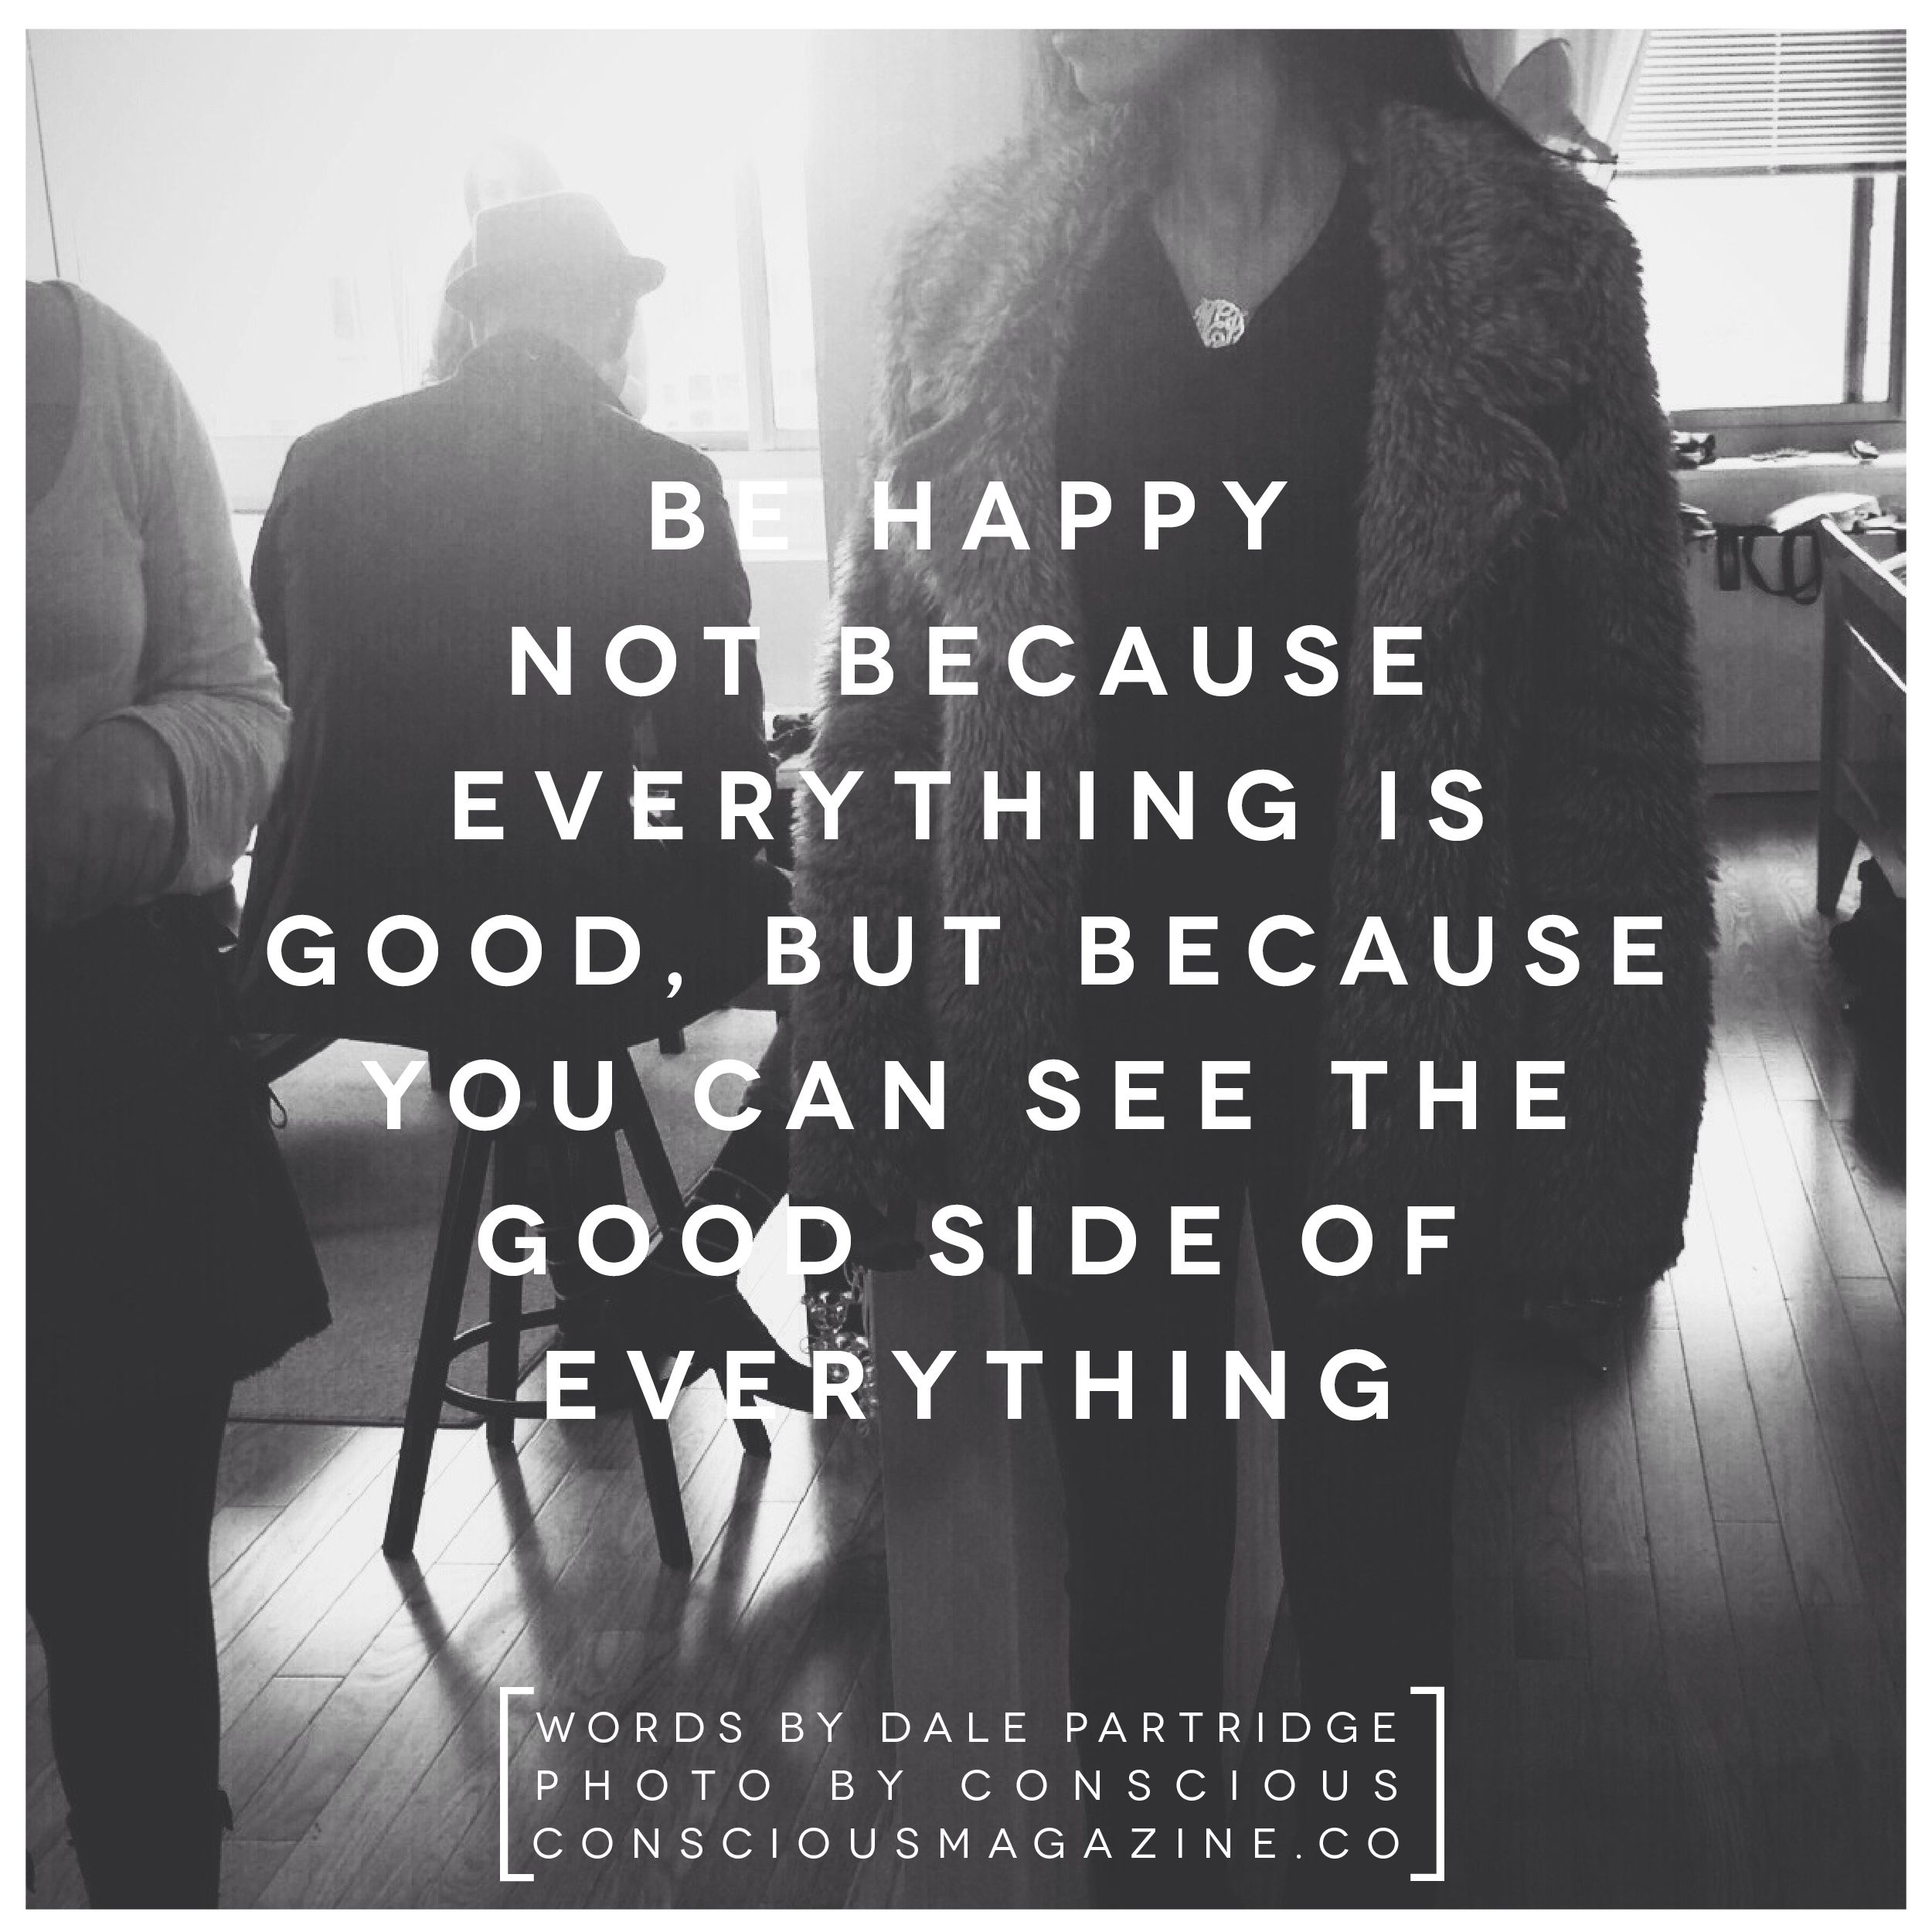 """""""Be happy not because everything is good, but because you can see the good side of everything"""" -Dale Partridge, Founder of Sevenly #ConsciousDaily"""